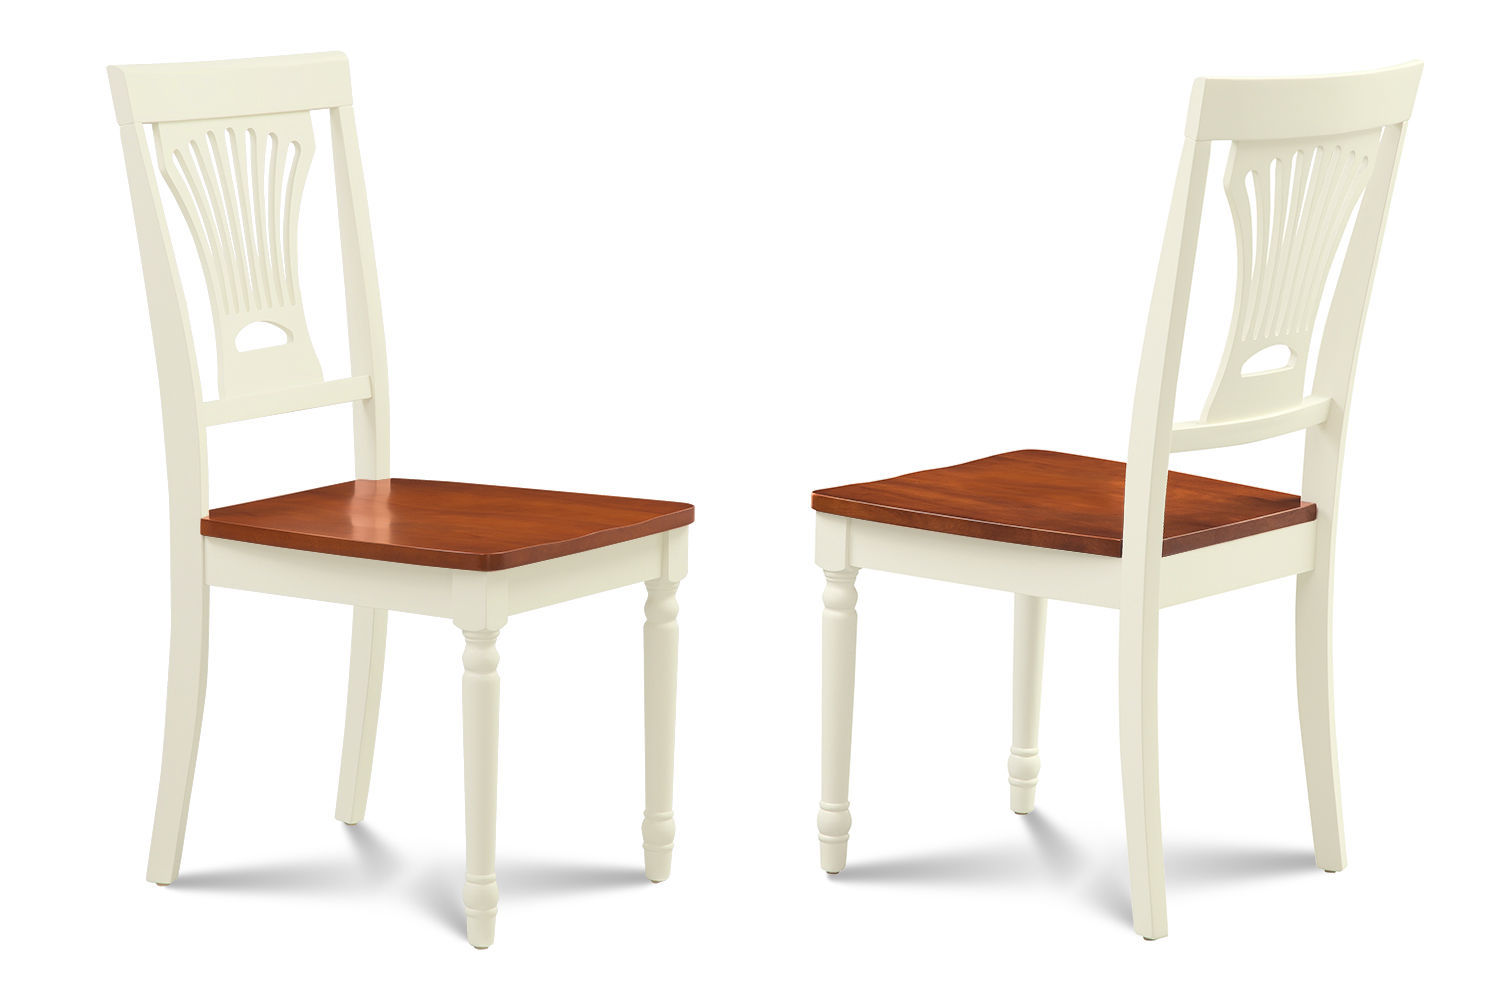 SET OF 4 DINING KITCHEN SIDE CHAIR WITH  WOODEN SEATS IN BUTTERMILK & CHERRY